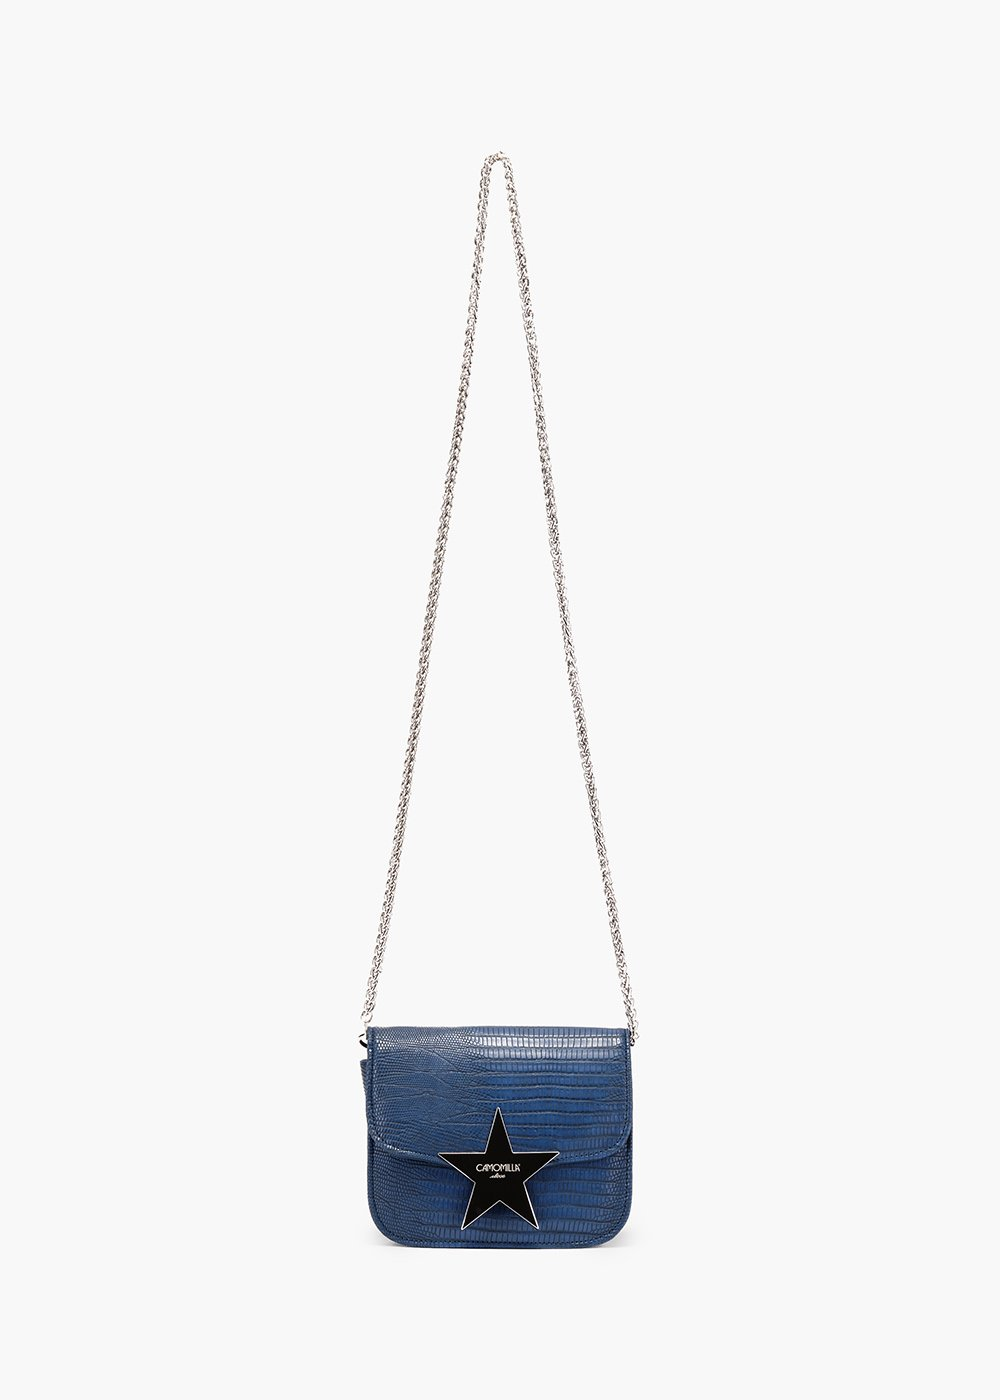 Blanch pochette in eco leather with python print - Blue - Woman